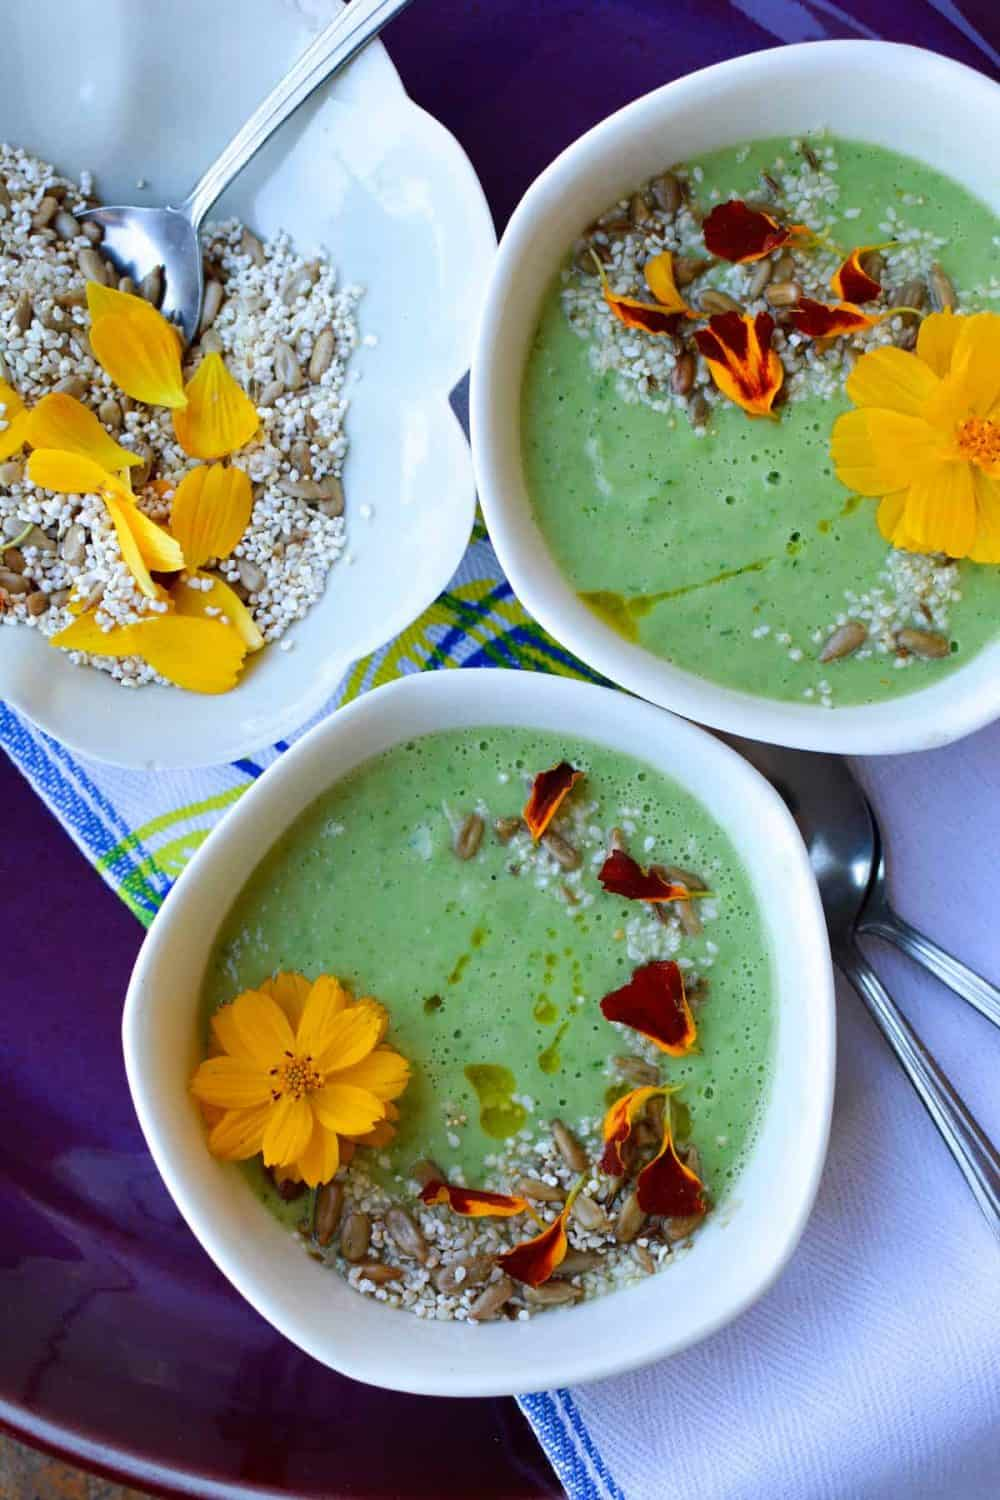 Chilled Avocado Soup from Hola Jalapeno